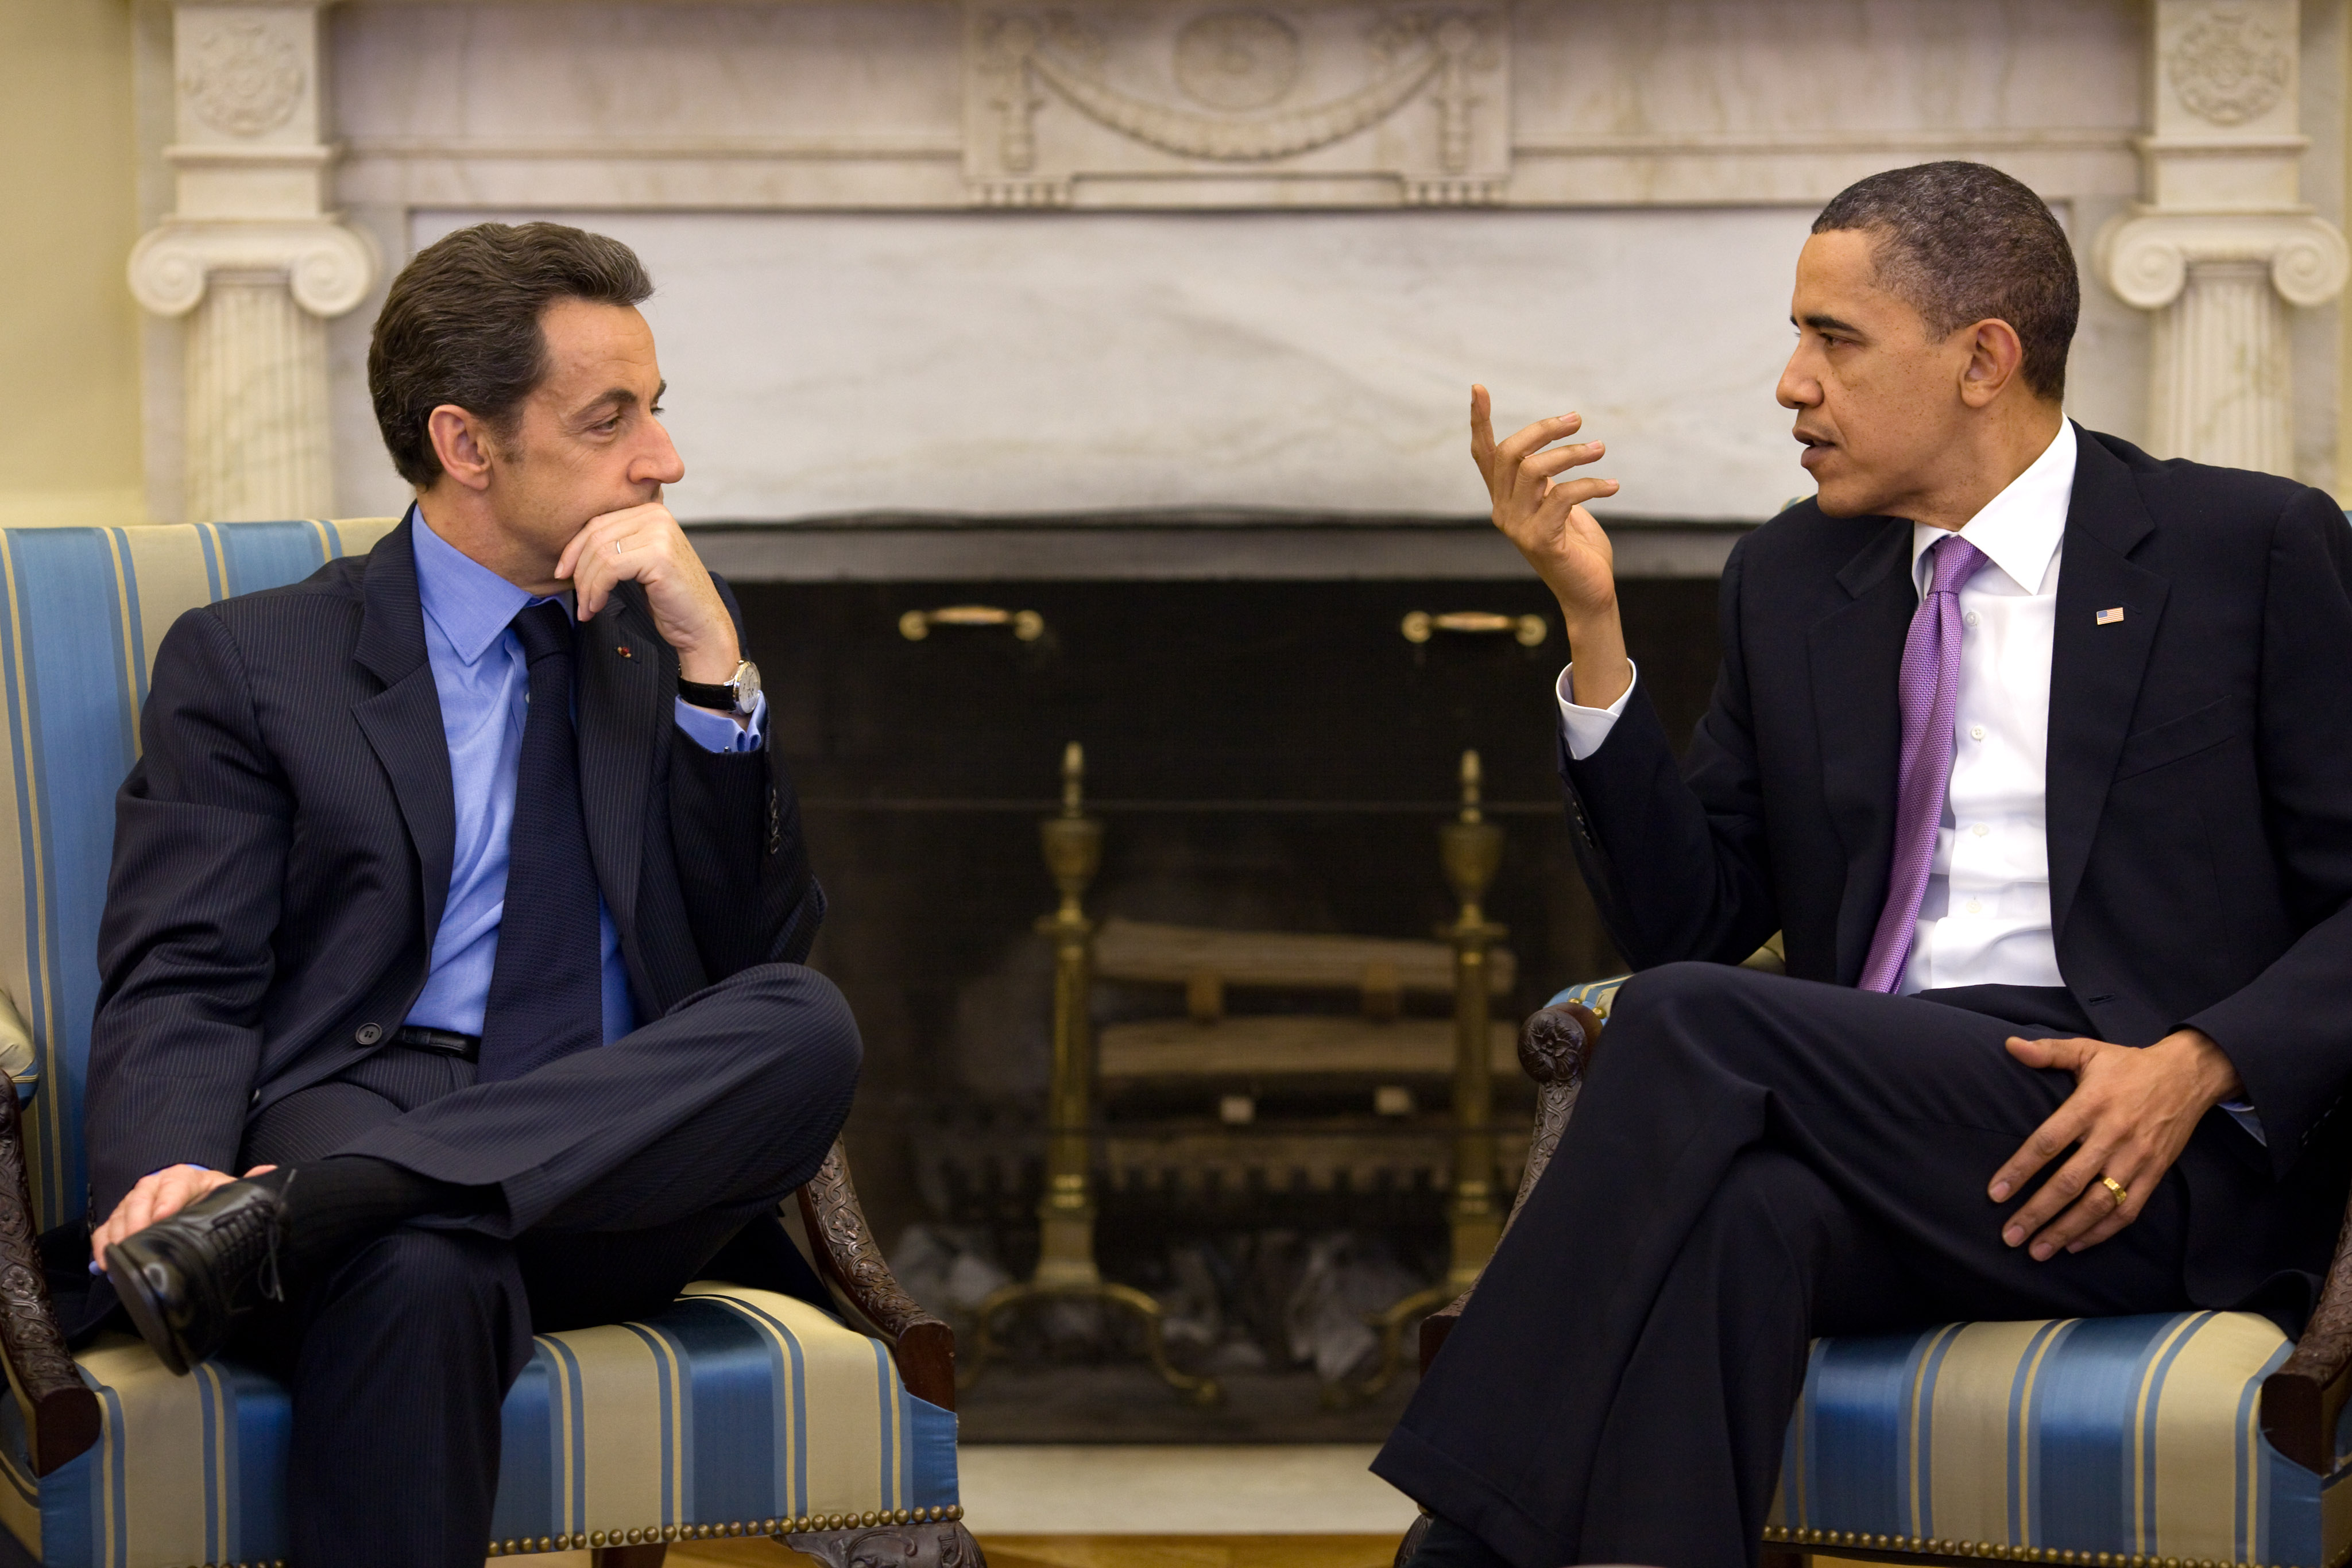 File:President Barack Obama meets with President Nicolas Sarkozy of France in the Oval Office